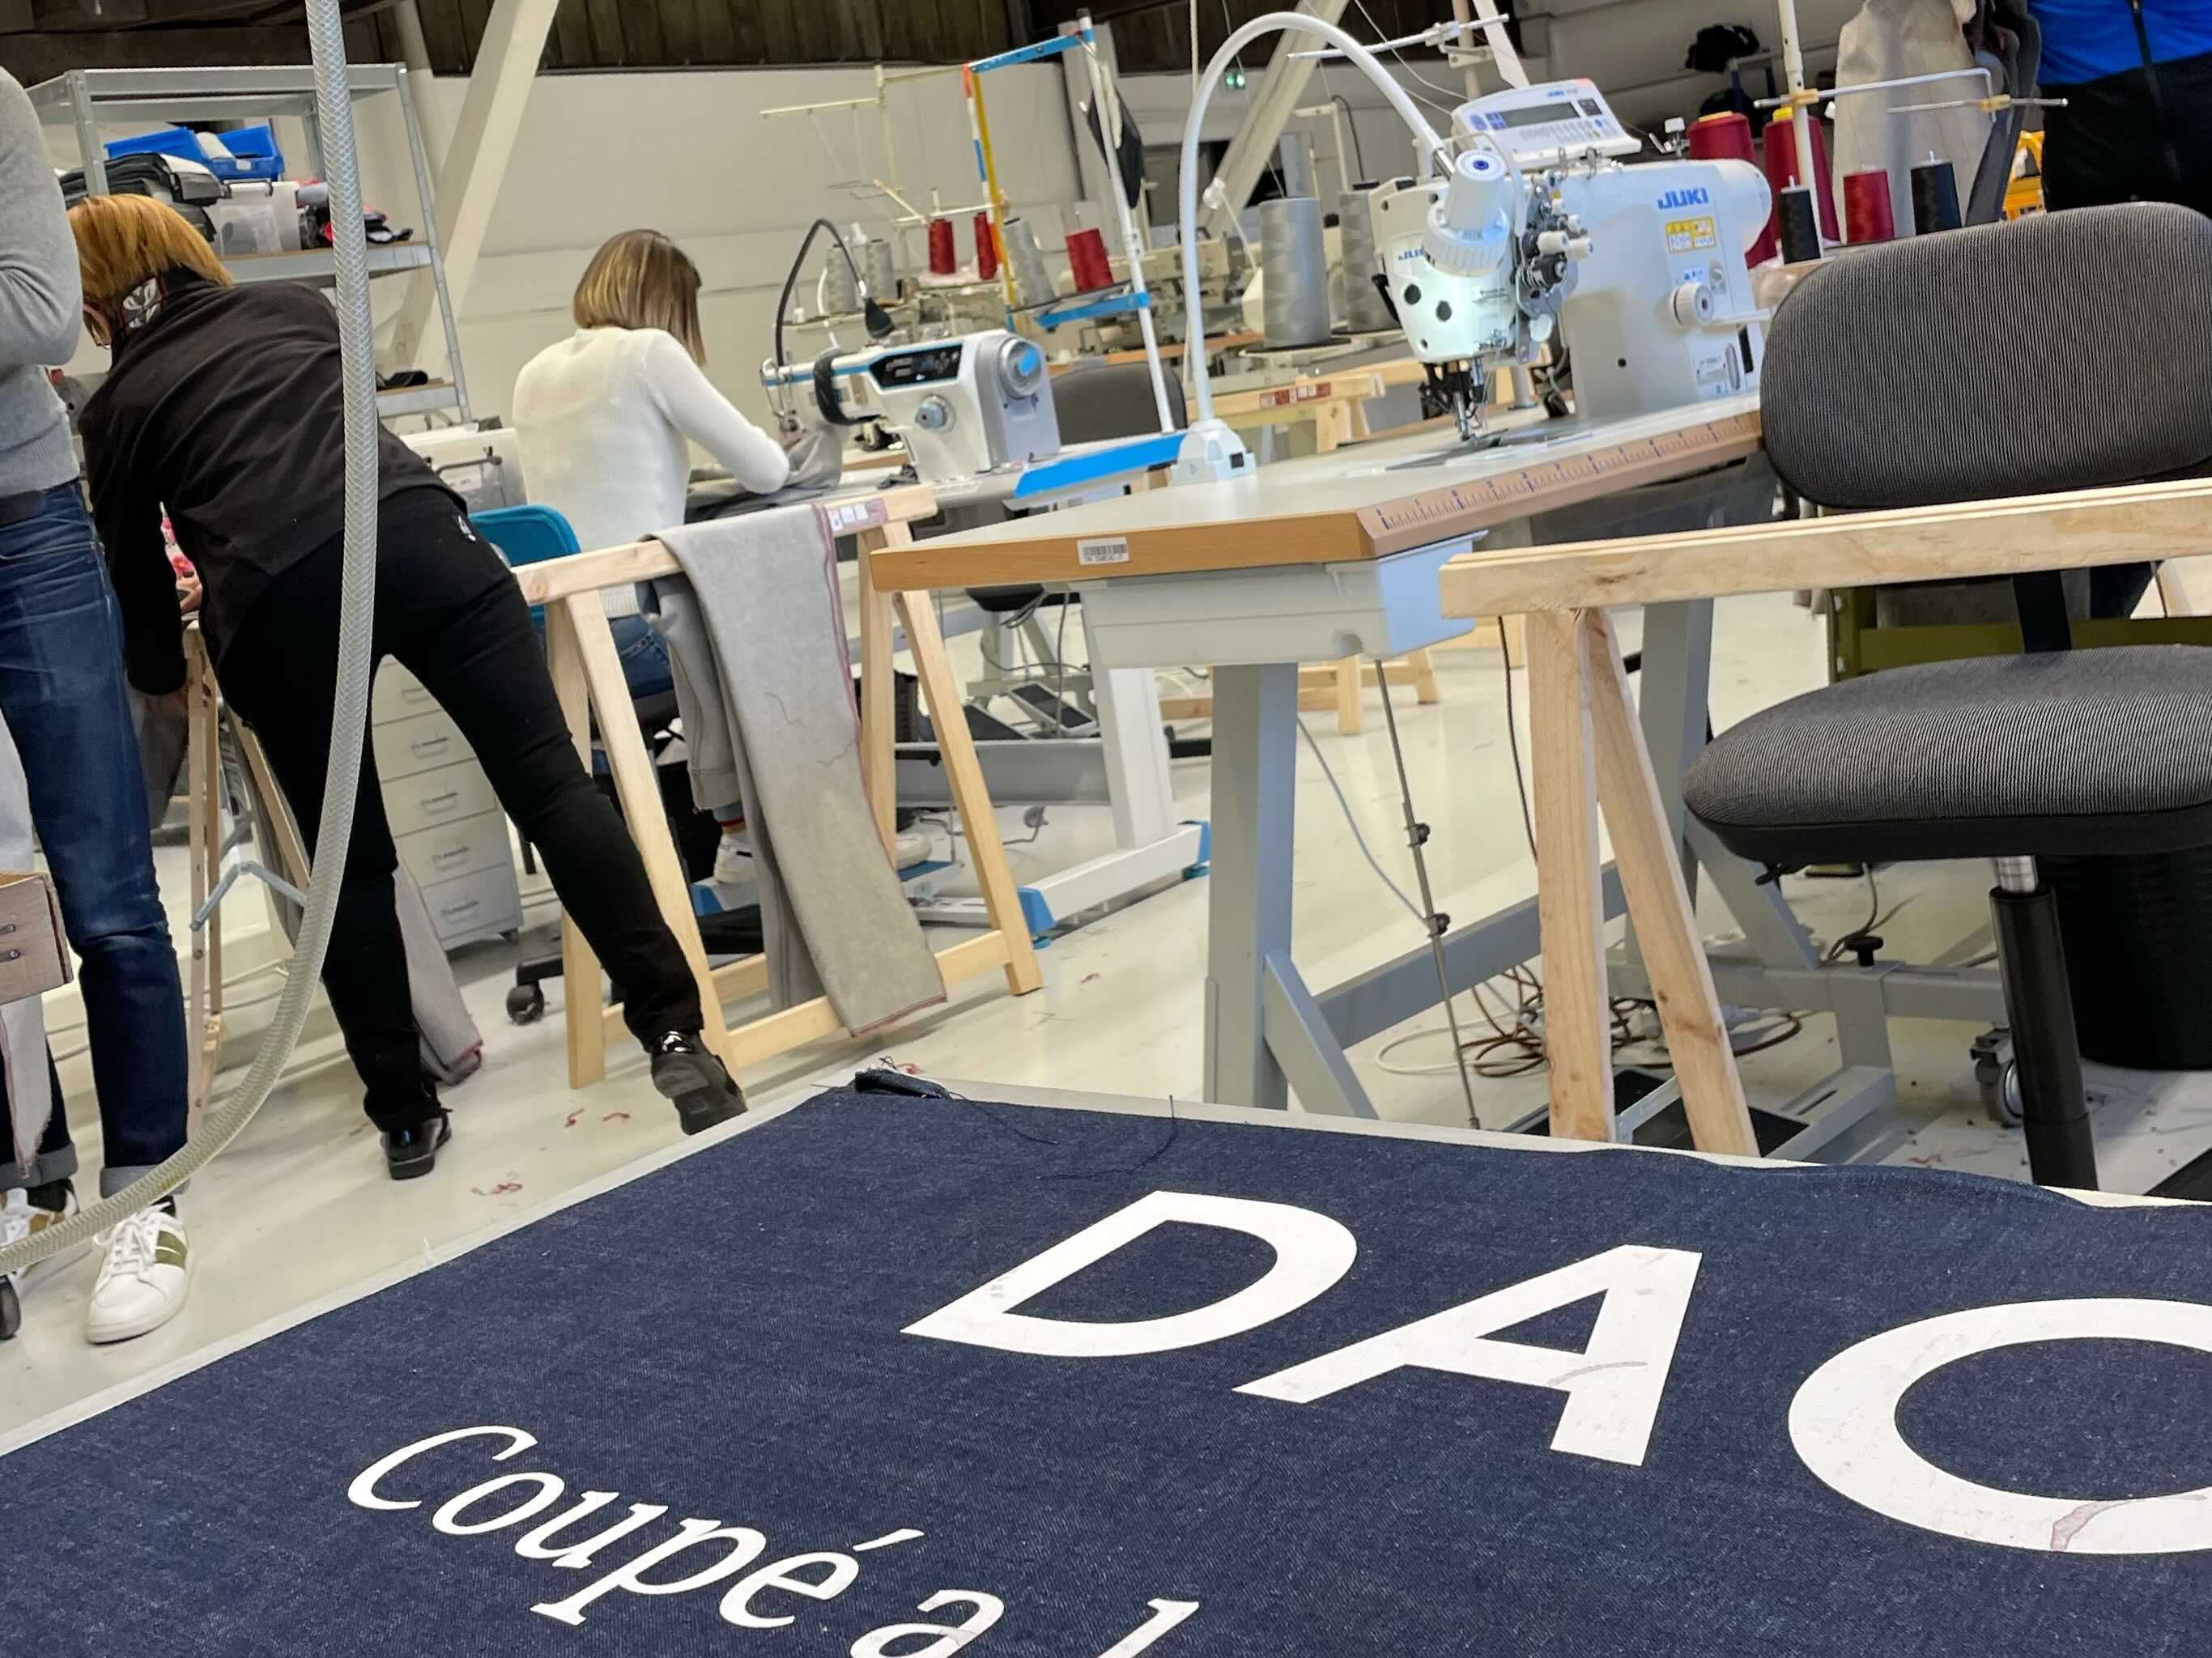 comment fabrique-t-on les jeans made in France DAO ?